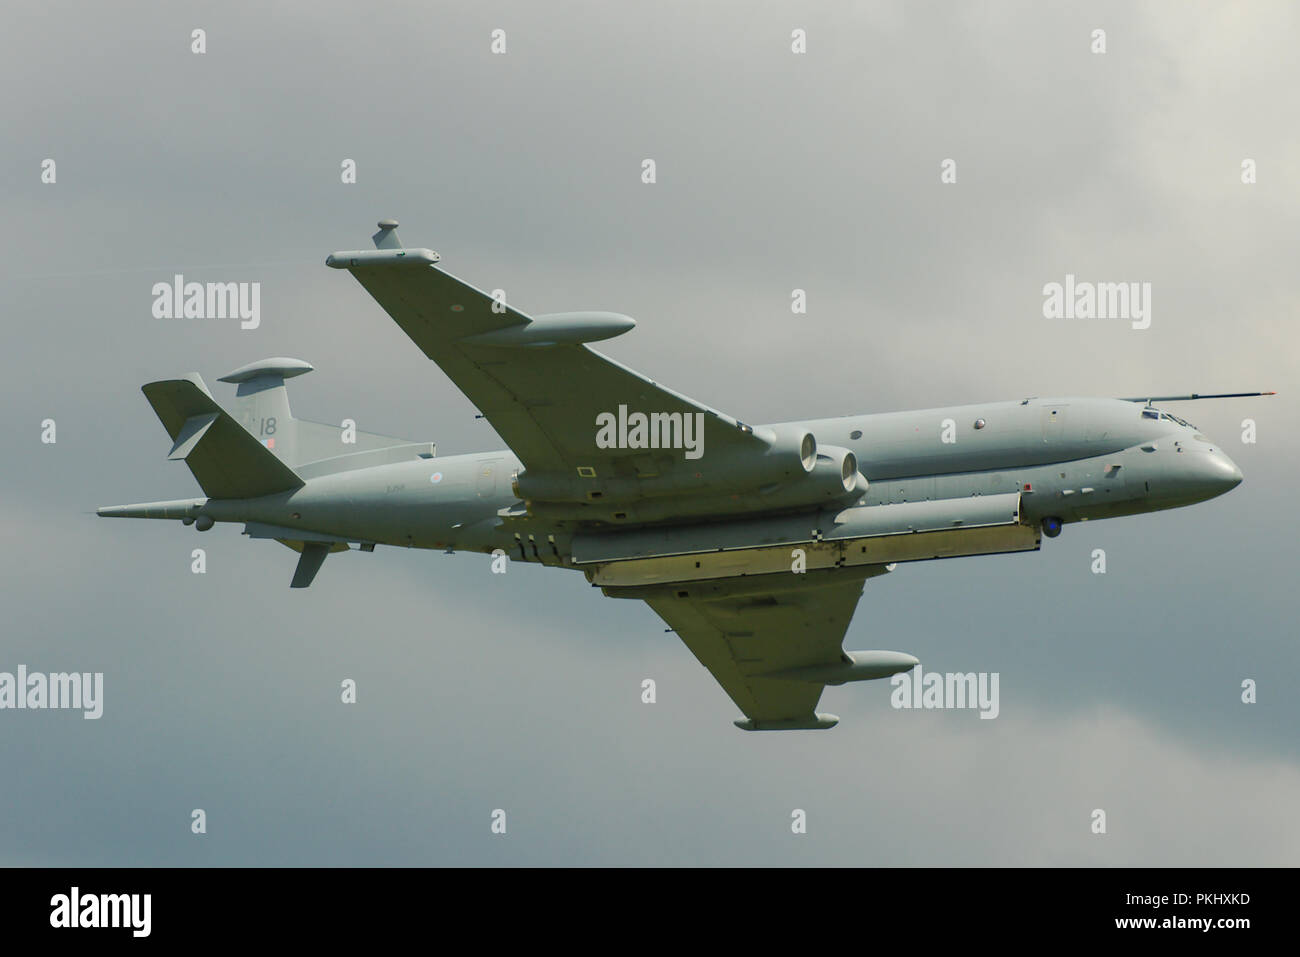 BAE Systems Nimrod MRA4 maritime patrol and attack aircraft intended to replace the Hawker Siddeley Nimrod MR2. Anti submarine warfare. ZJ518 Stock Photo